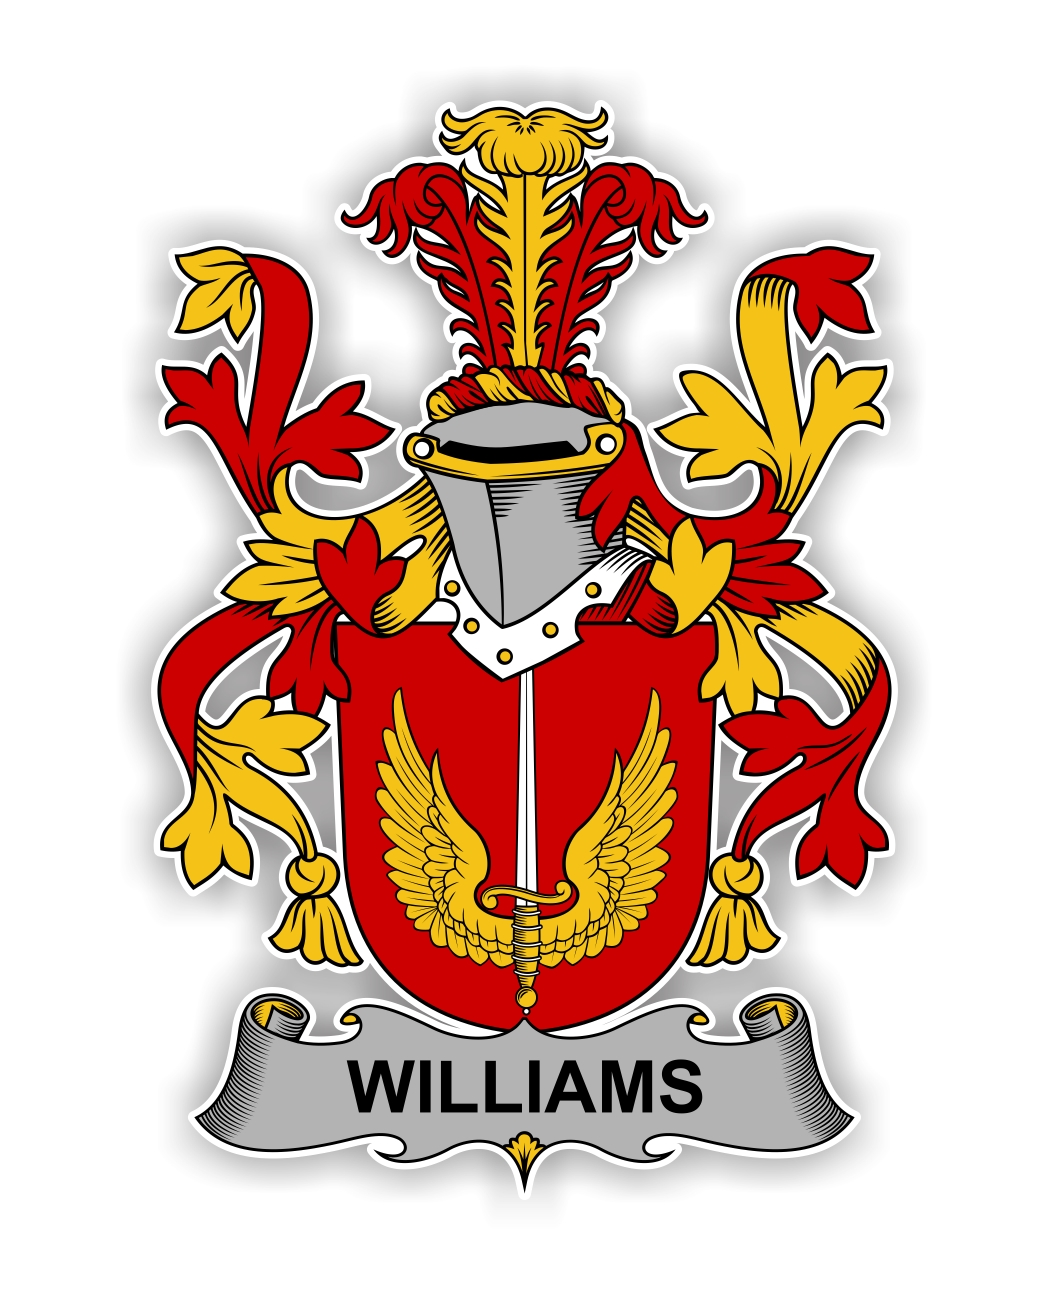 Williams Family Crest Vinyl Die Cut Decal Sticker 4